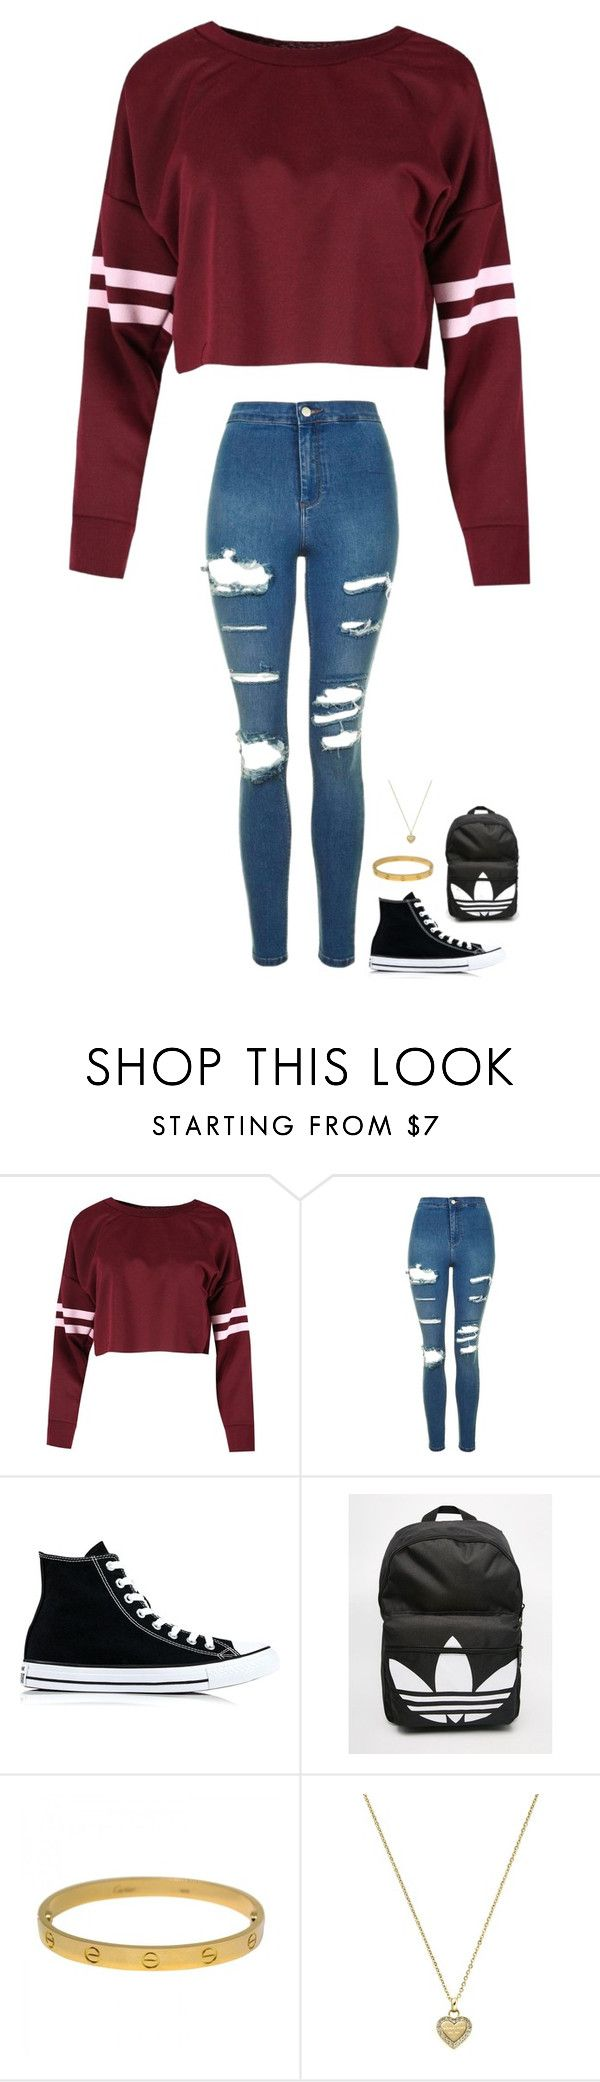 """Untitled #373"" by jasmine2001 ❤ liked on Polyvore featuring Topshop, Converse, adidas, Cartier and Michael Kors"